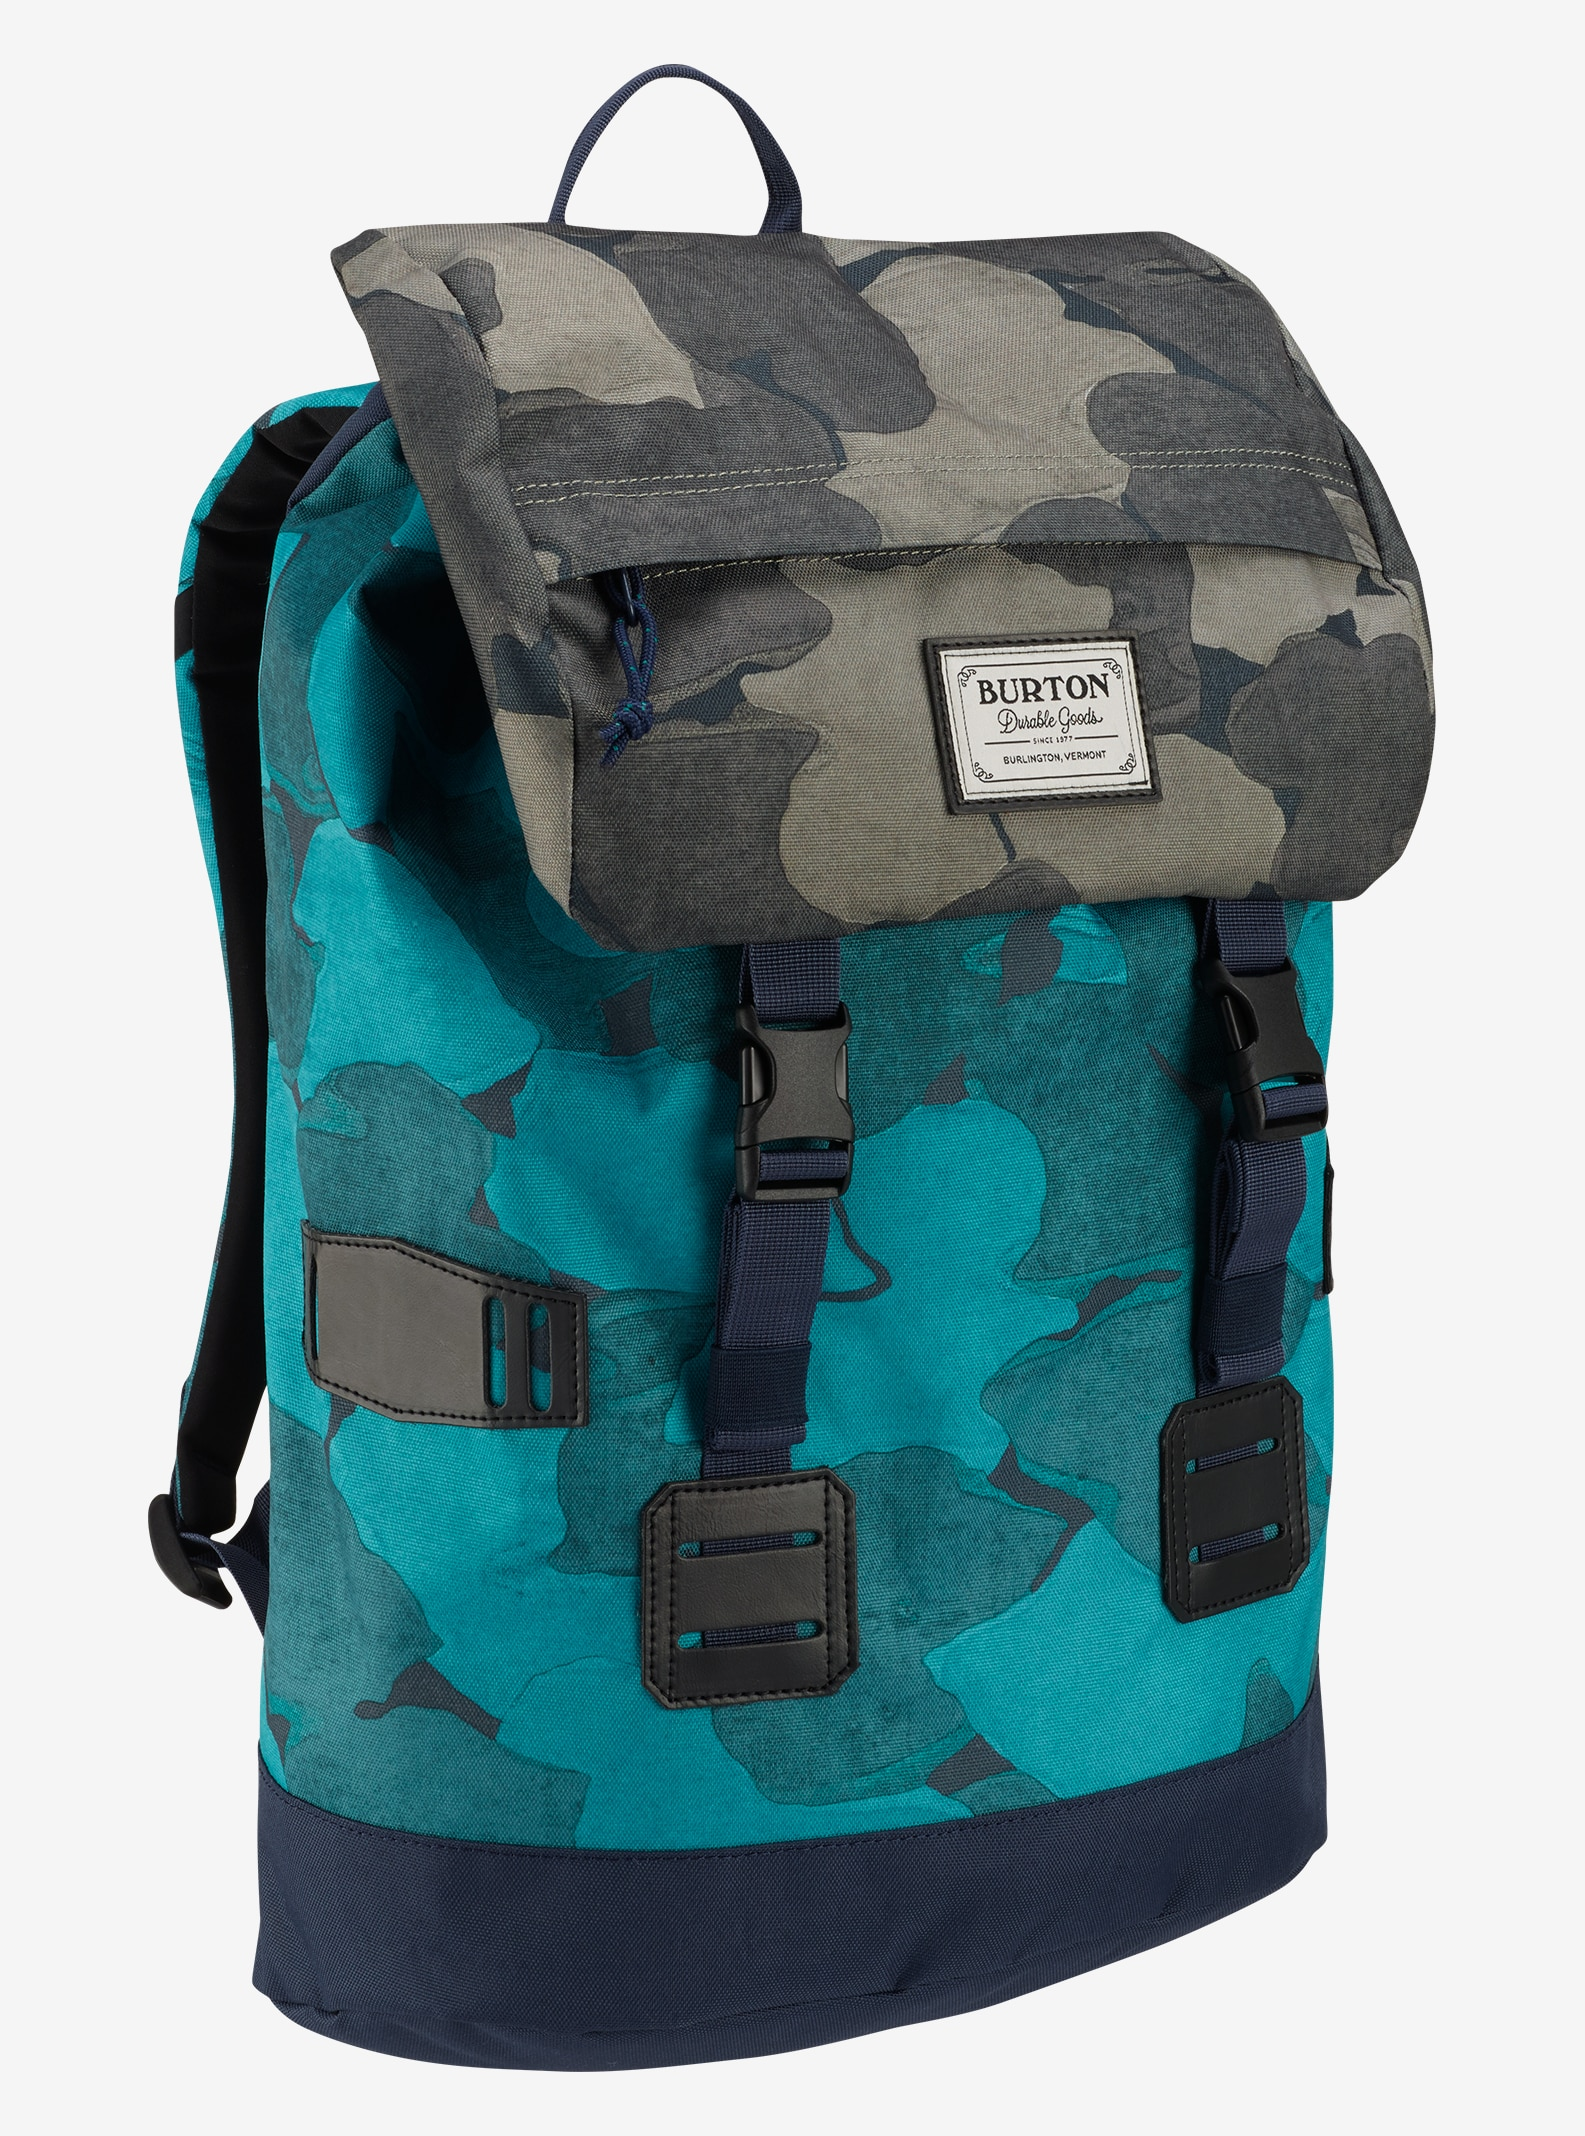 Burton Women's Tinder Backpack shown in Pond Camo Print